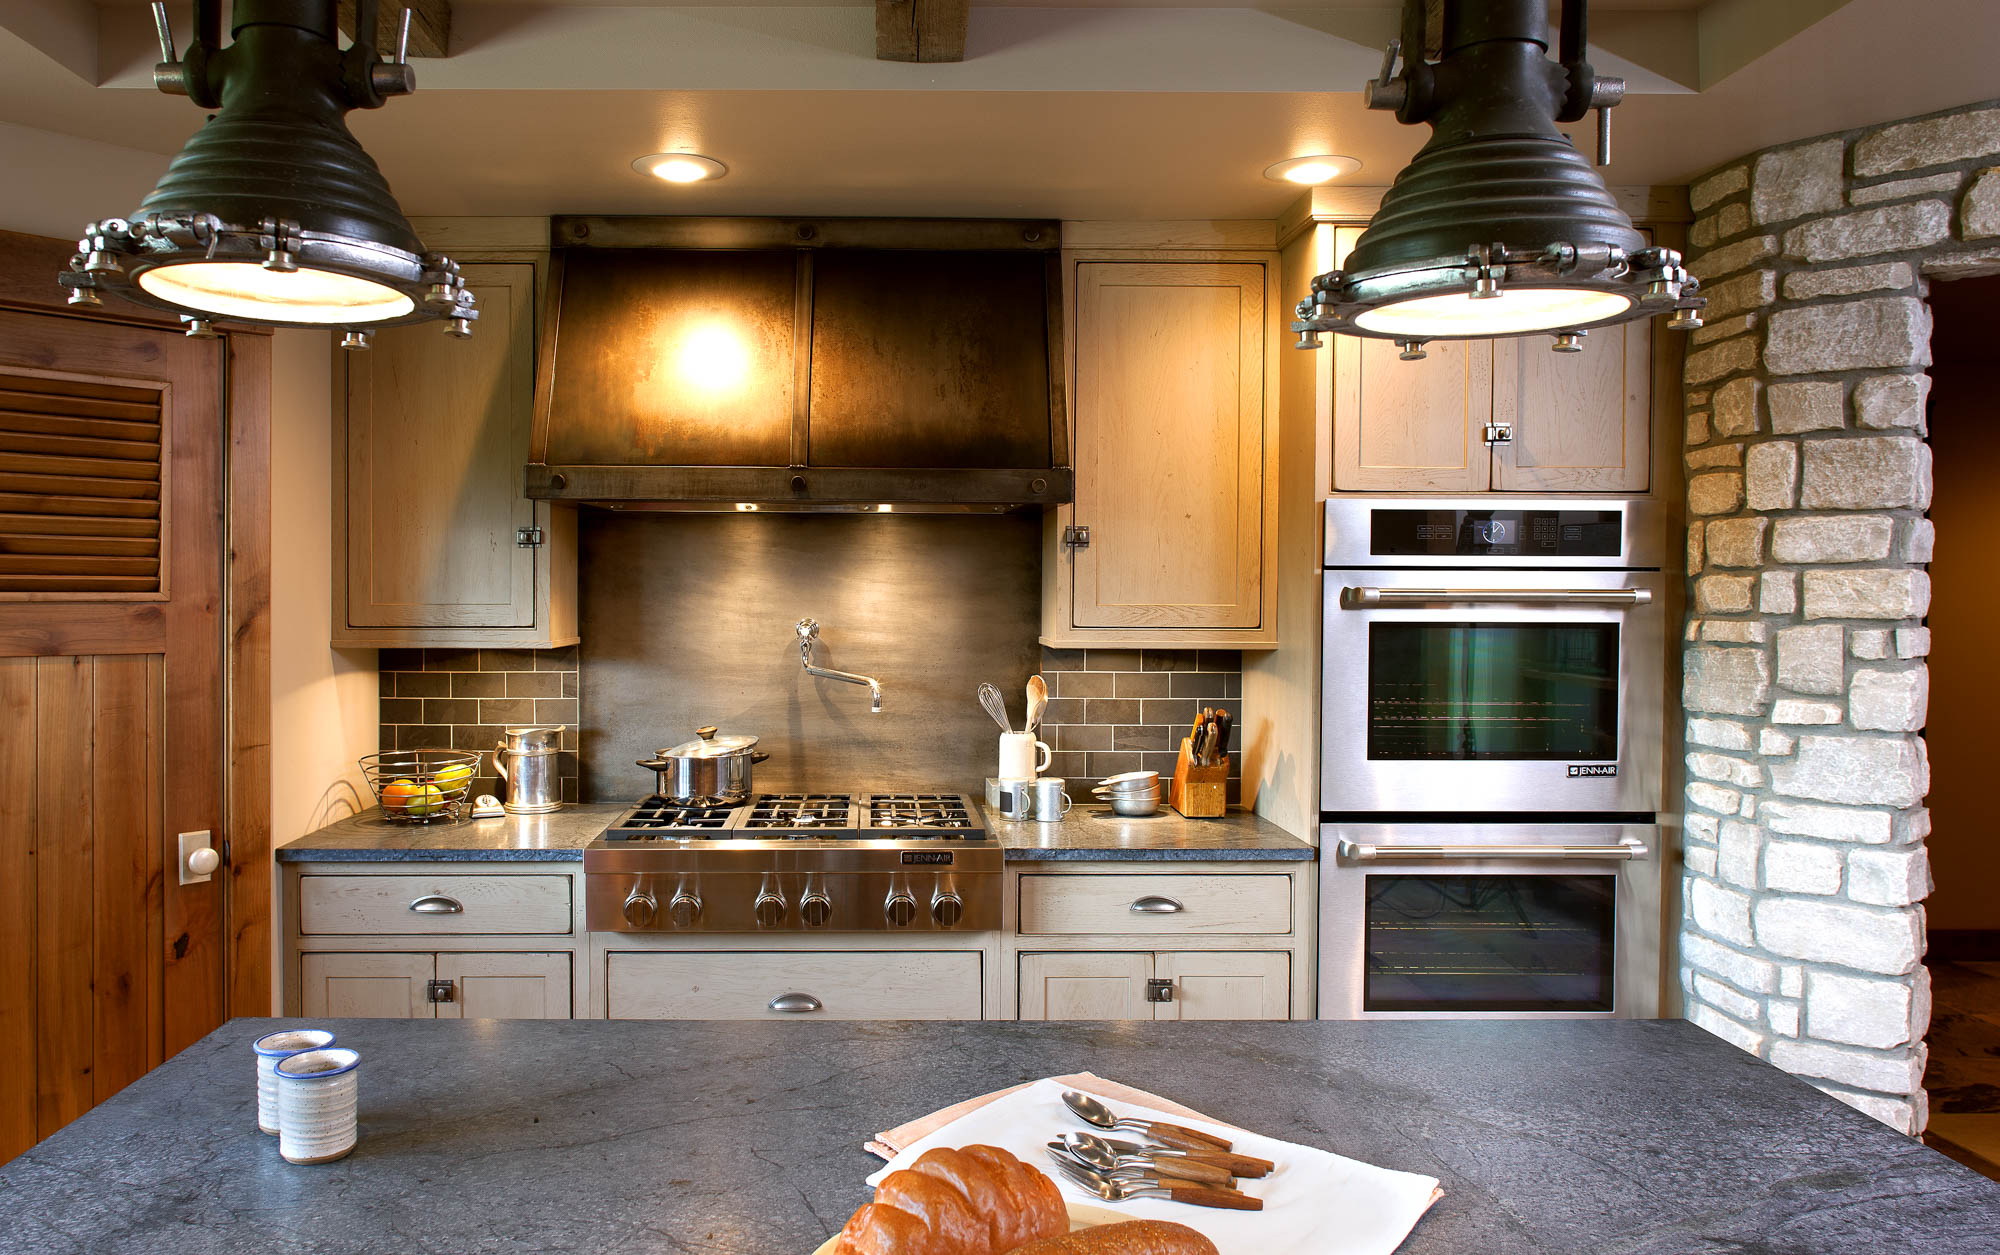 Painted kitchen cabinets in Sandstone by Showplace Cabinetry - view 8